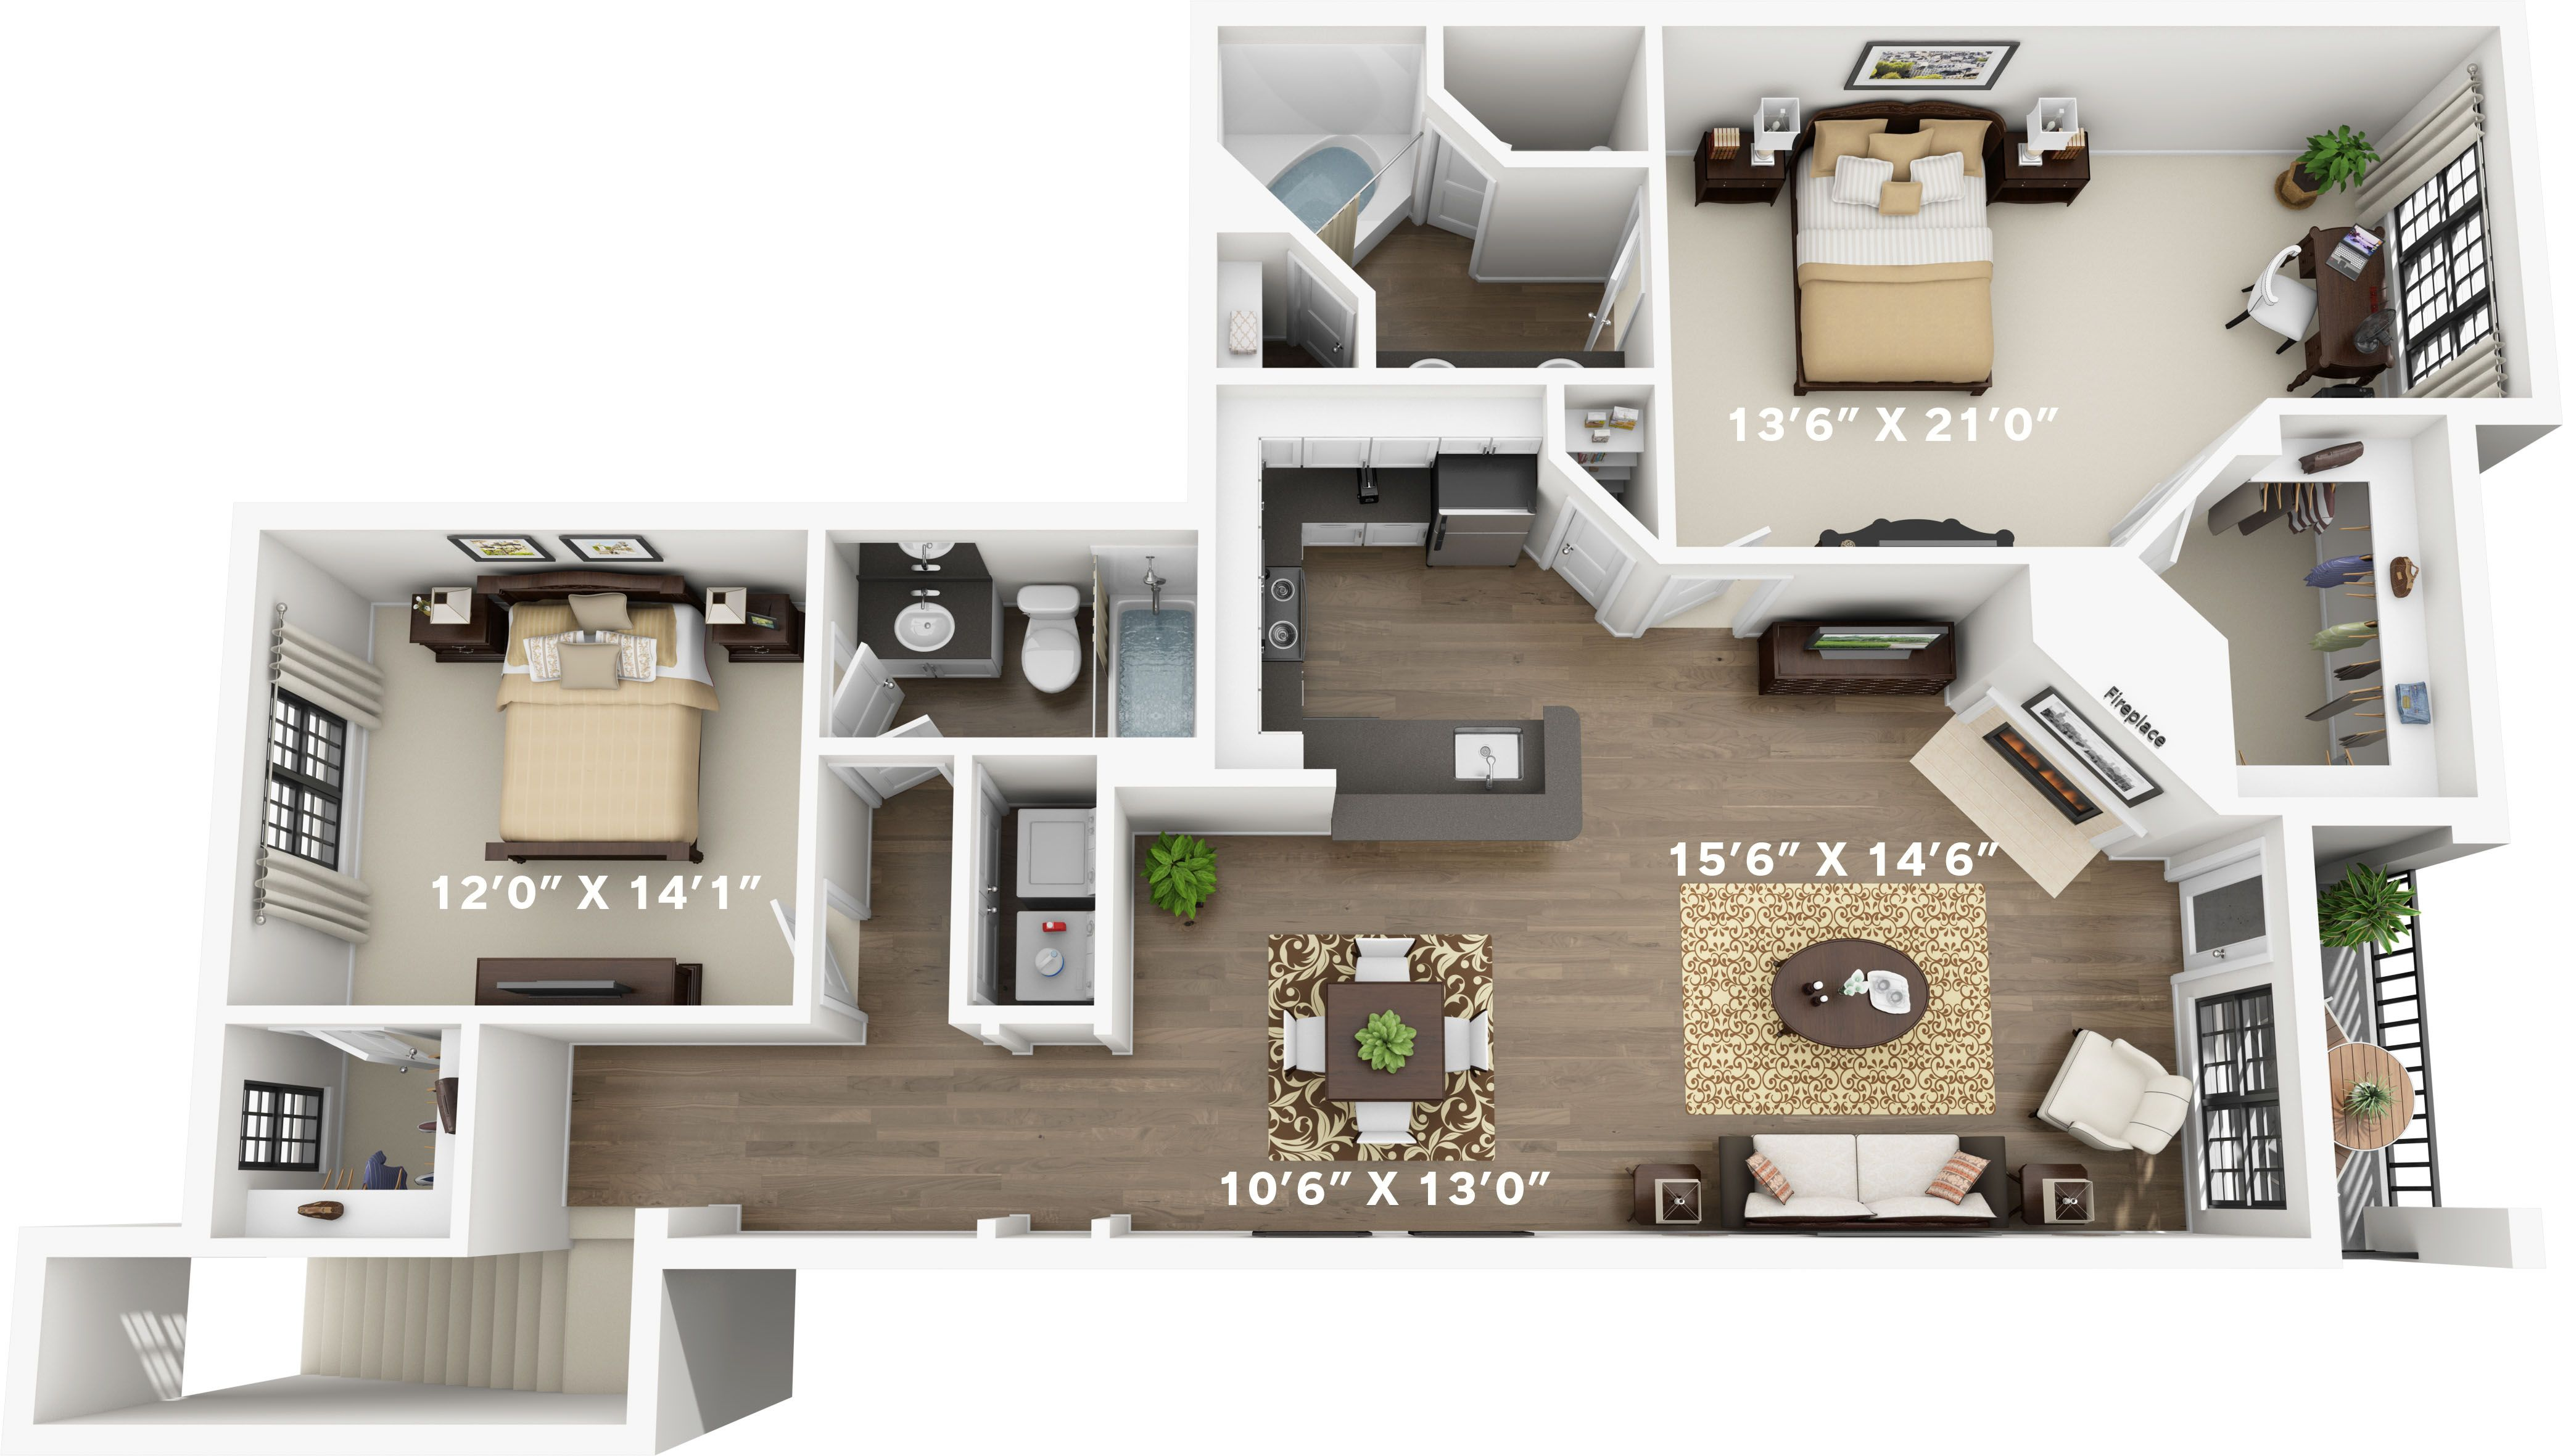 1 2 3 And 4 Bedroom Apartments In North Richland Hills Tx Northrichlandhills Texas Apartment Stead House Layout Plans My House Plans Apartment Layout